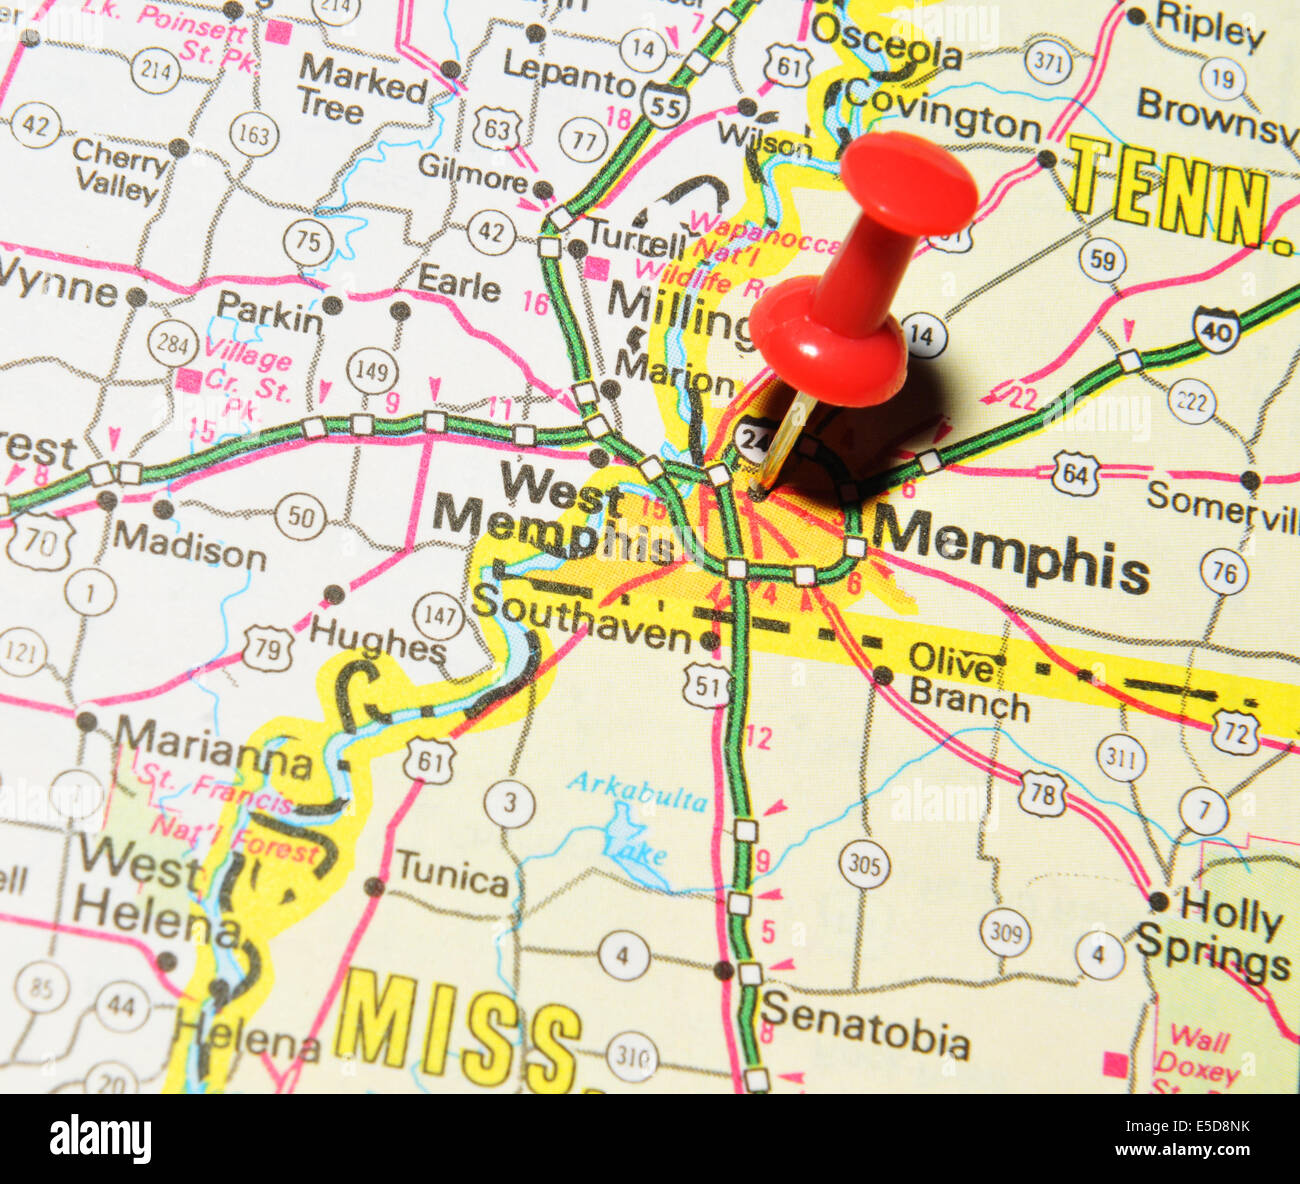 Memphis Pinned On Map Usa Stock Photos & Memphis Pinned On Map Usa